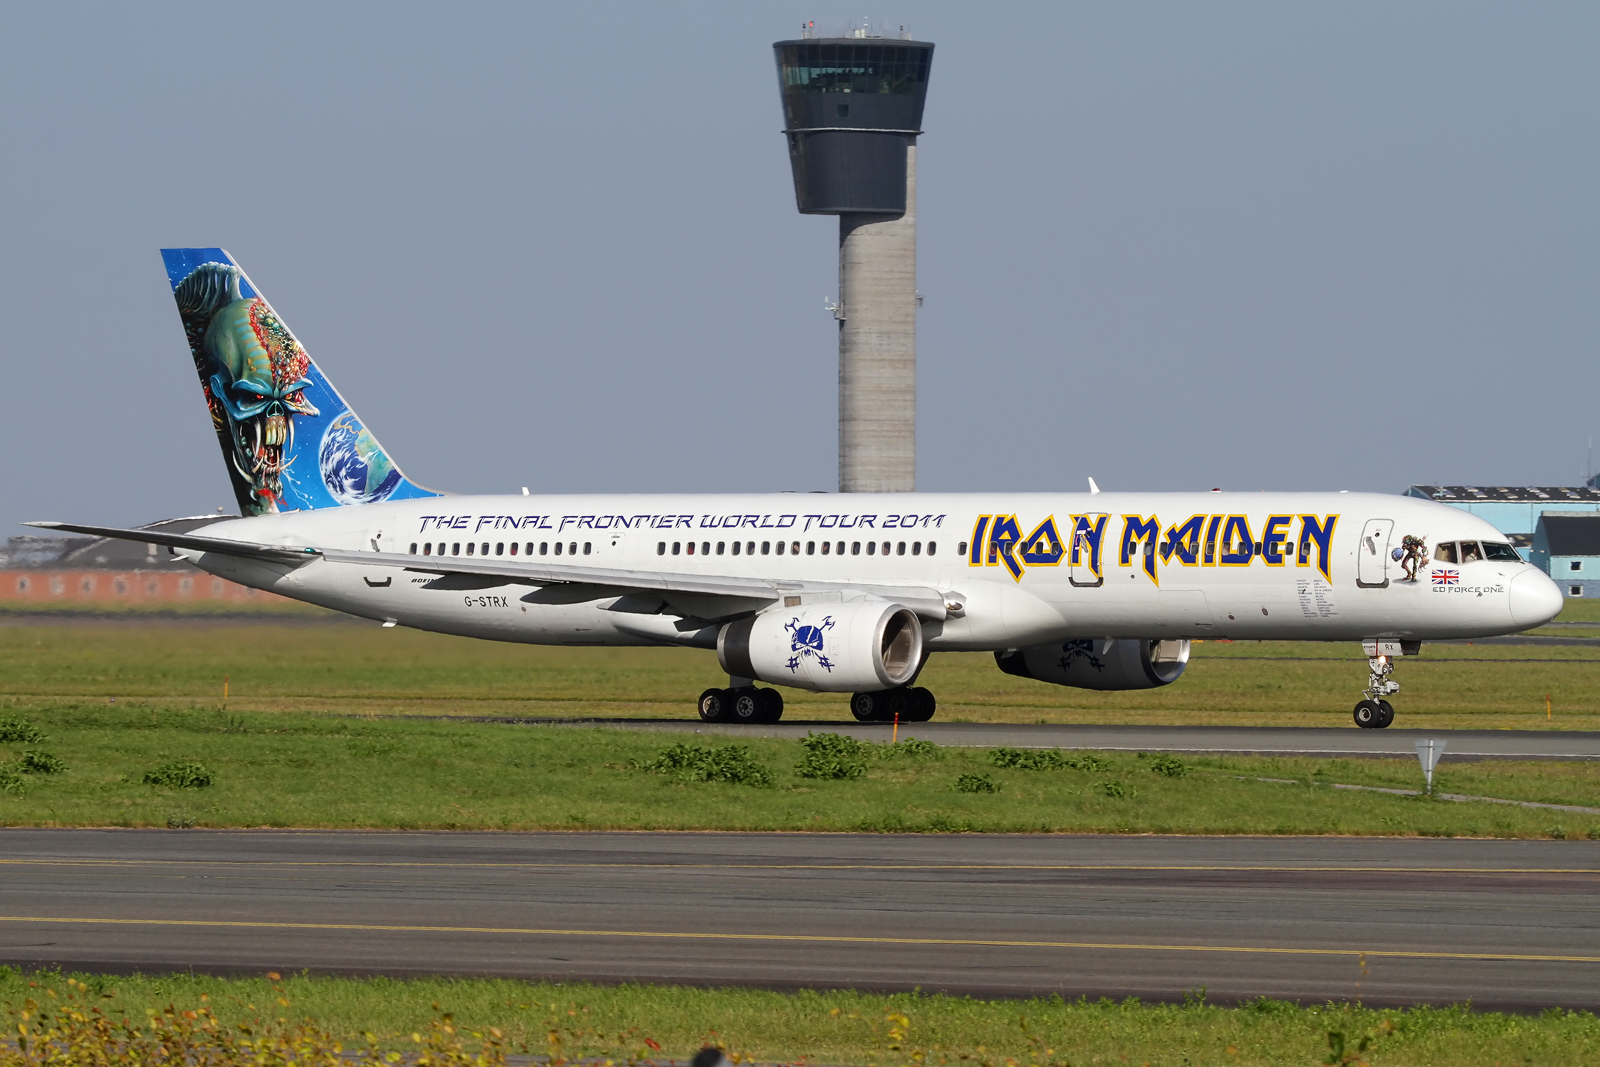 ed force one - iron maiden's 757